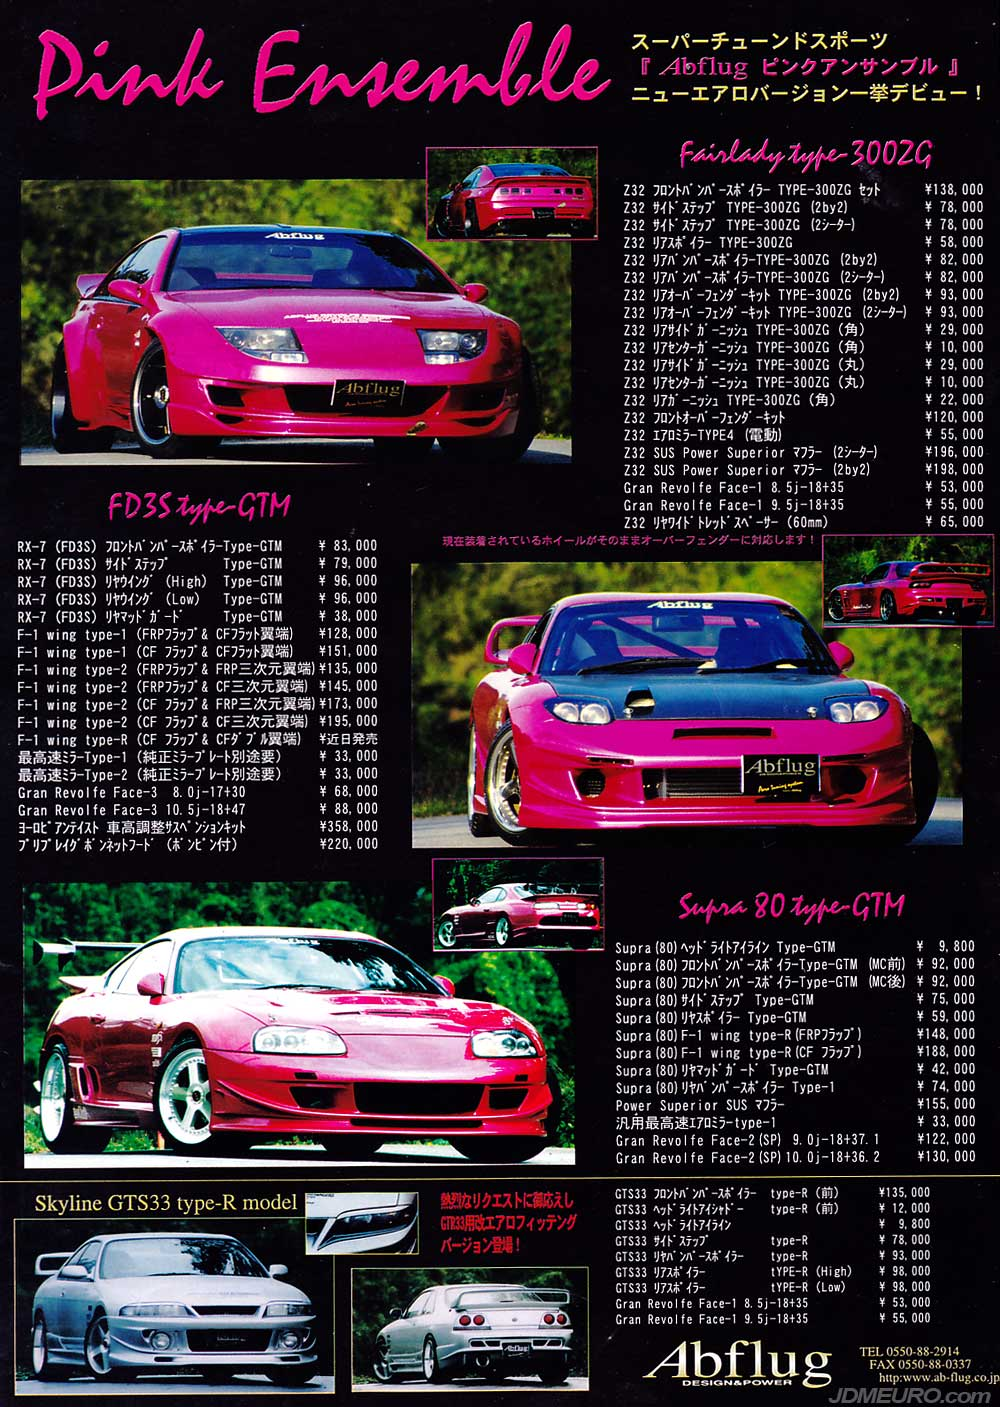 When it comes to 90's JDM Tuning shops, Abflug is one of the top dogs. Most notable for the Toyota Supra's they tuned, the Mazda RX7's Nissan 300ZX and Nissan Skyline were all top notch. All pictured on their happy looking type-GTM body kits and on a version of thier Abflug Gran Revolfe JDM Wheels; whether its the Abflug Gran Revolfe Face 1, Abflug Gran Revolfe Face 2 or Abflug Gran Revolfe Face 3 JDM Wheels.